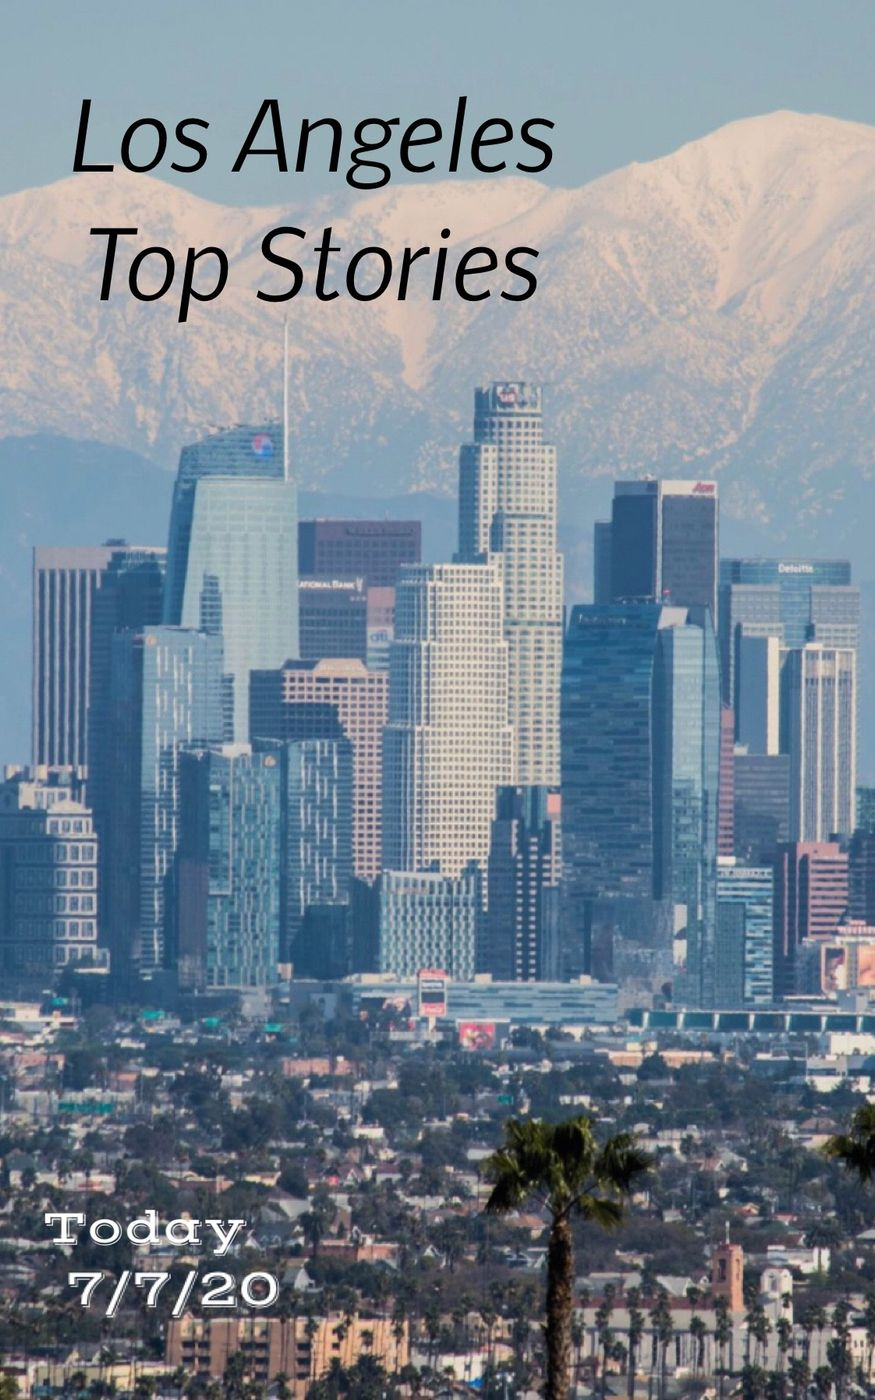 Los Angeles - top stories 7/7/20